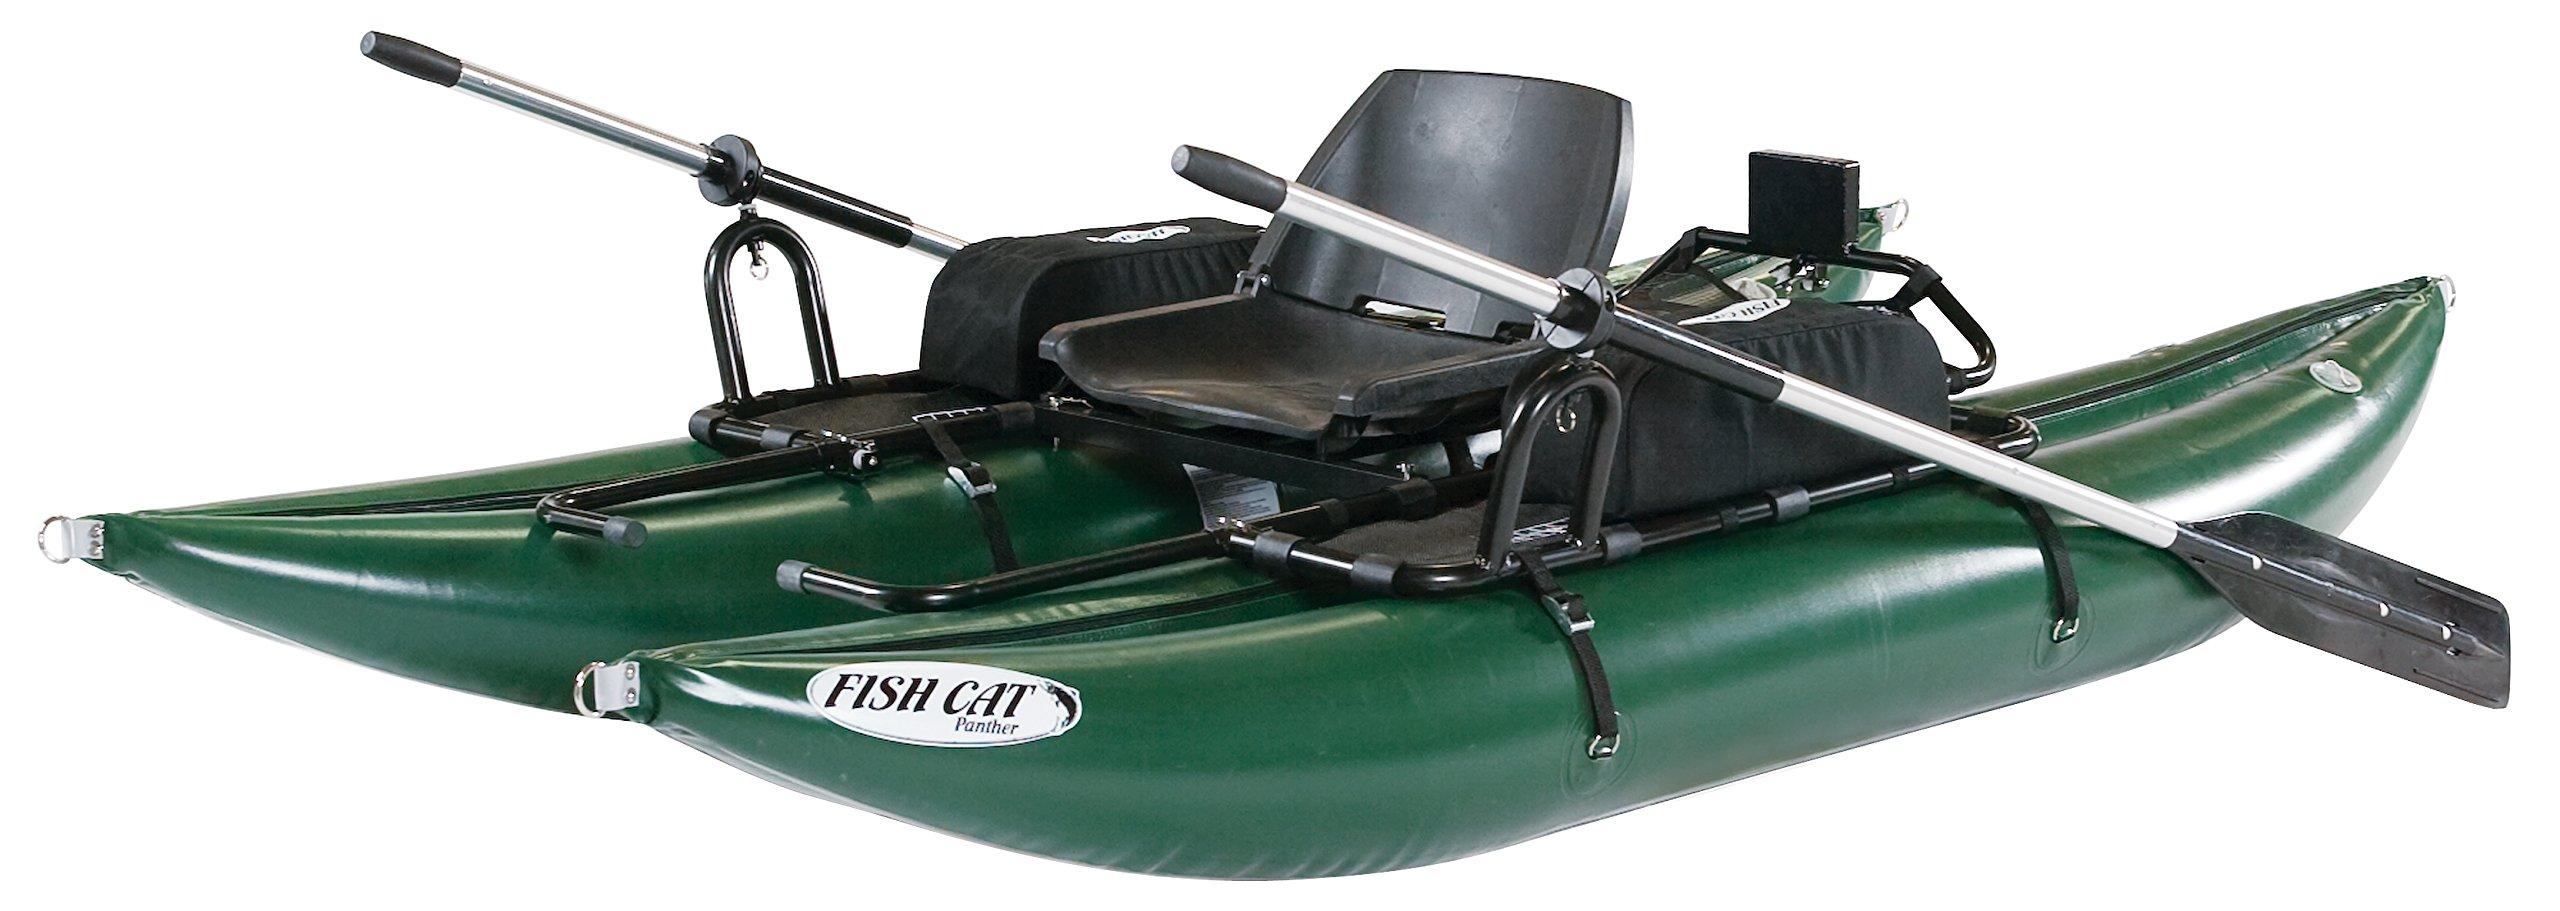 Outcast Fish Cat Panther Pontoon Boat - with Free $75 Gift Card by Outcast